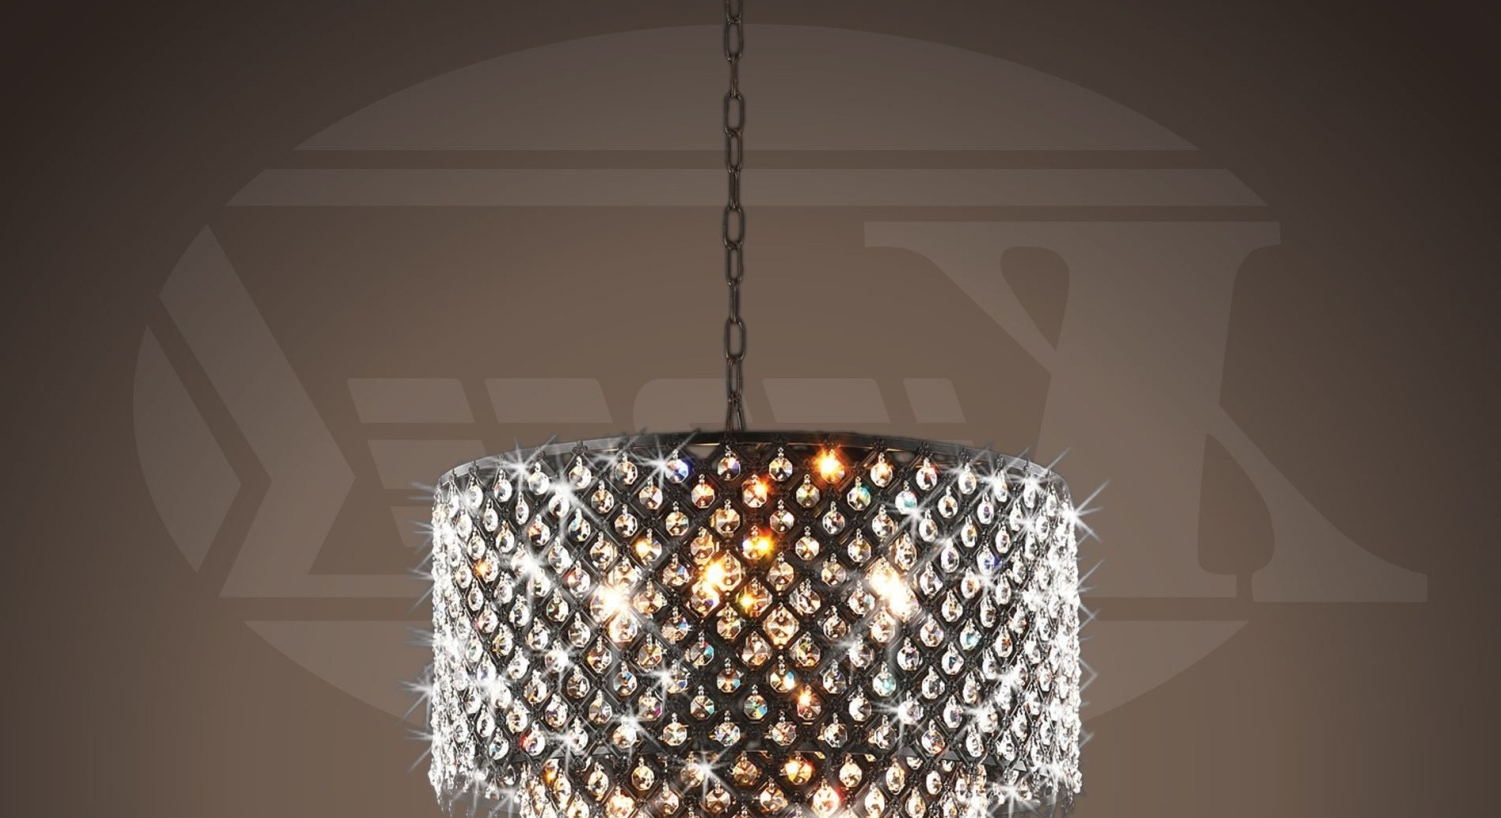 Widely Used Metal Ball Chandeliers For Chandelier : Beautiful Metal Ball Candle Chandeliers Chandeliers (View 15 of 20)